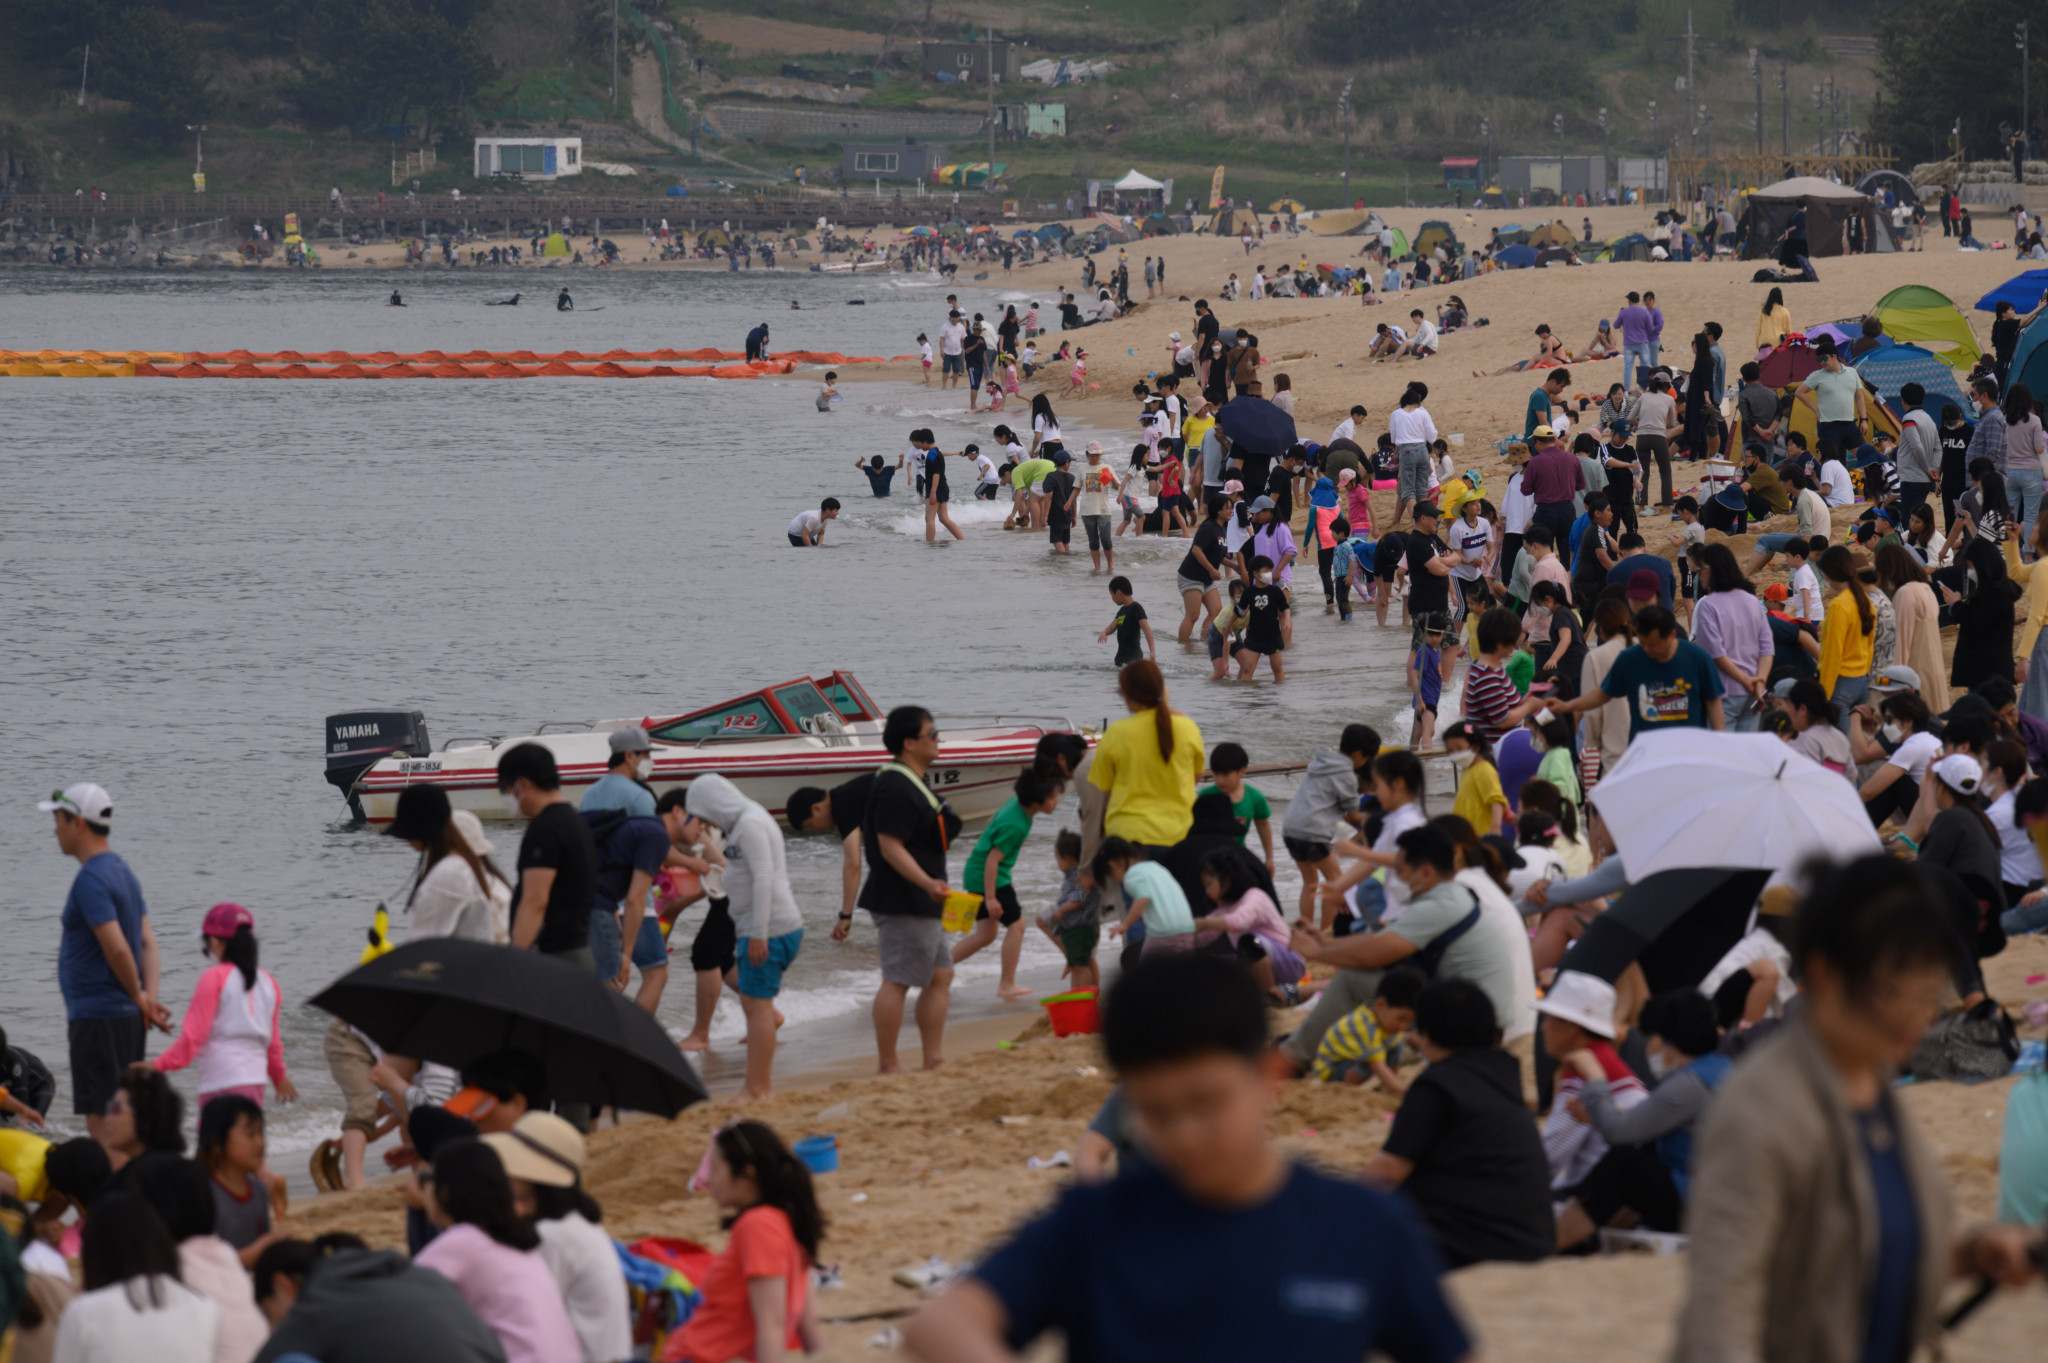 South Korea has reported few new COVID-19 cases lately and many headed to the beach this weekend ©Getty Images